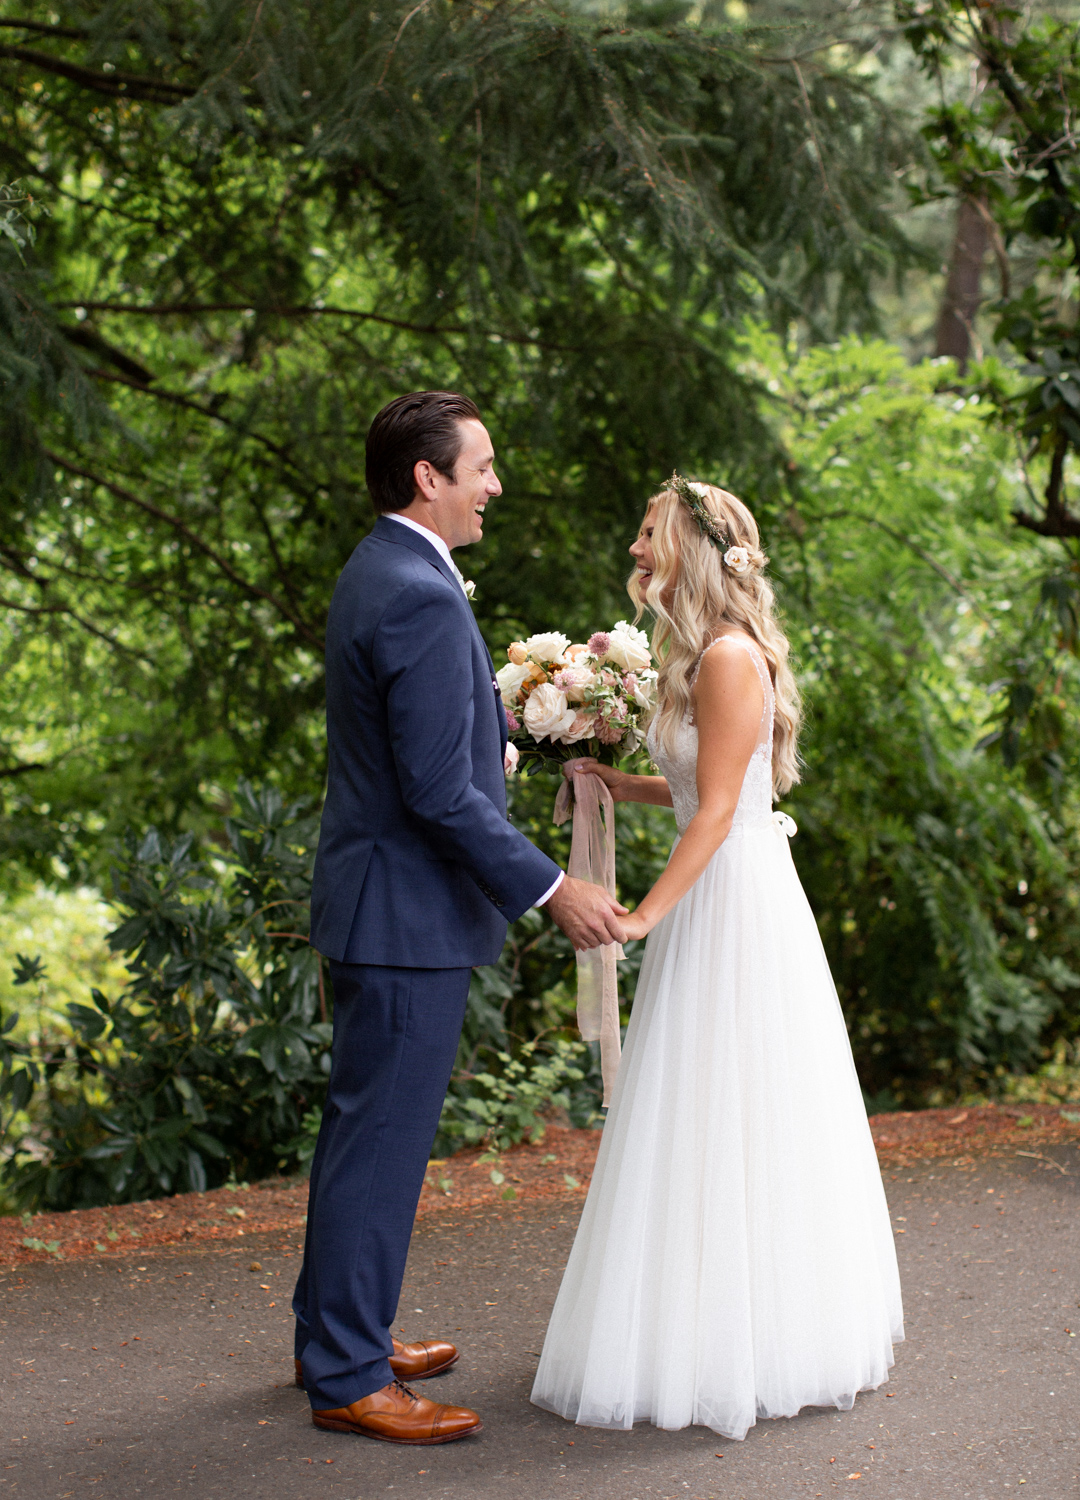 Jessica + Scott_Olivia_Ashton_Photography-30.jpg